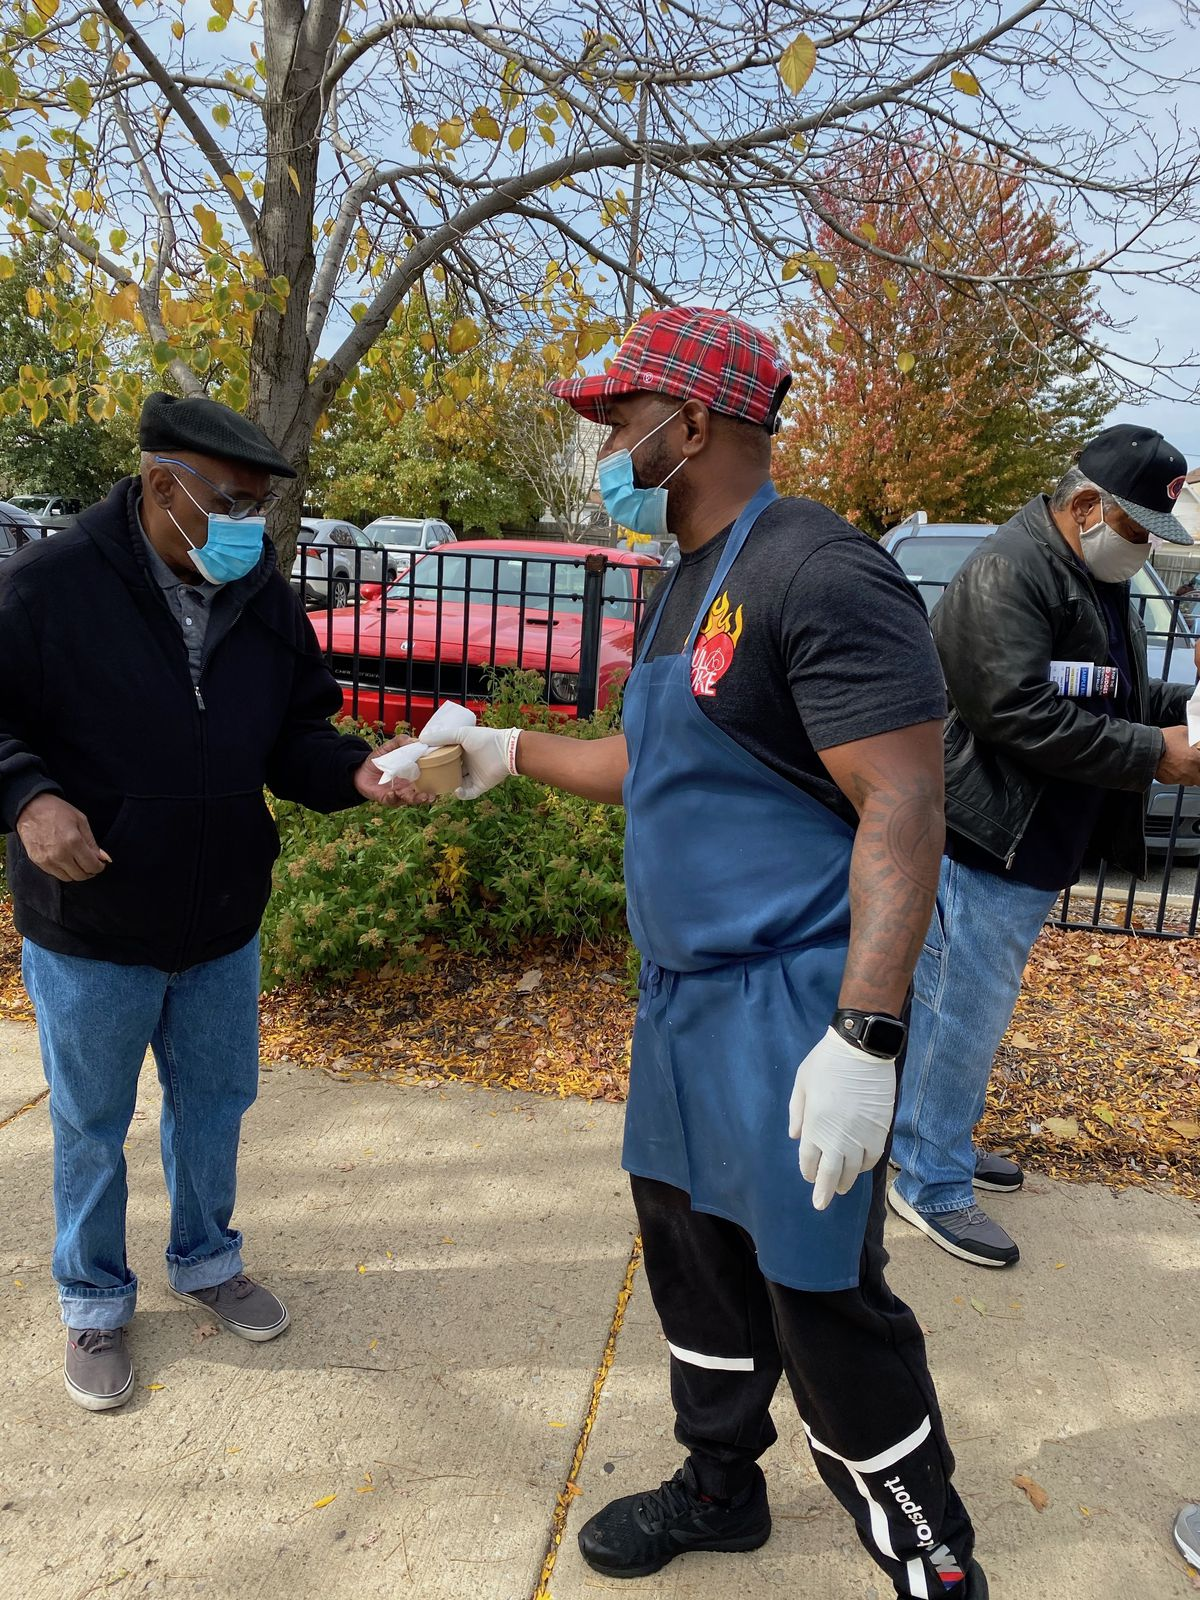 A chef hands a package of food to a man standing on a sidewalk.